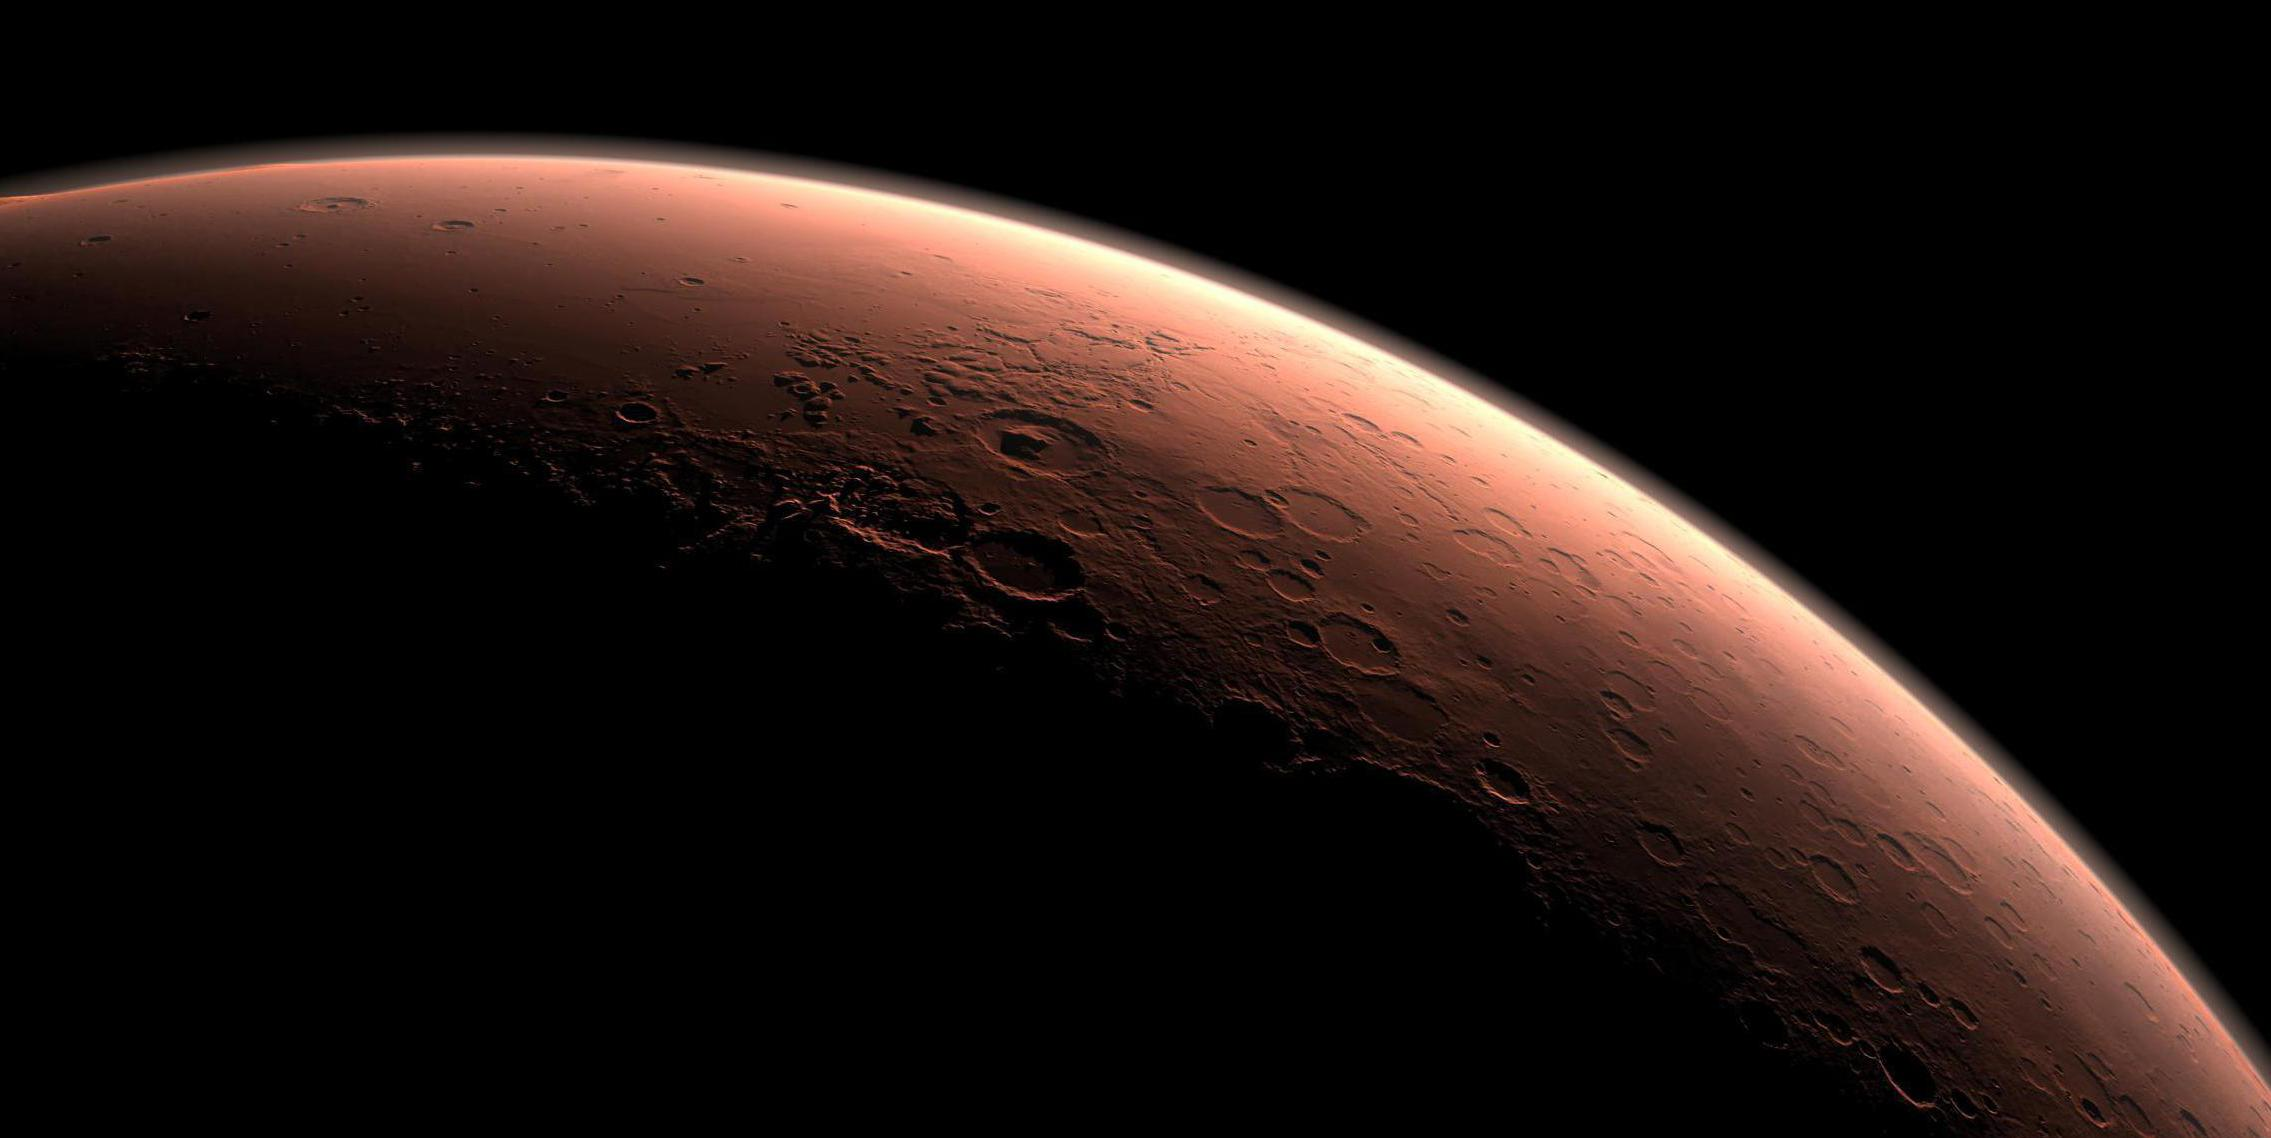 EmbracePlus on Mars by the 2030s